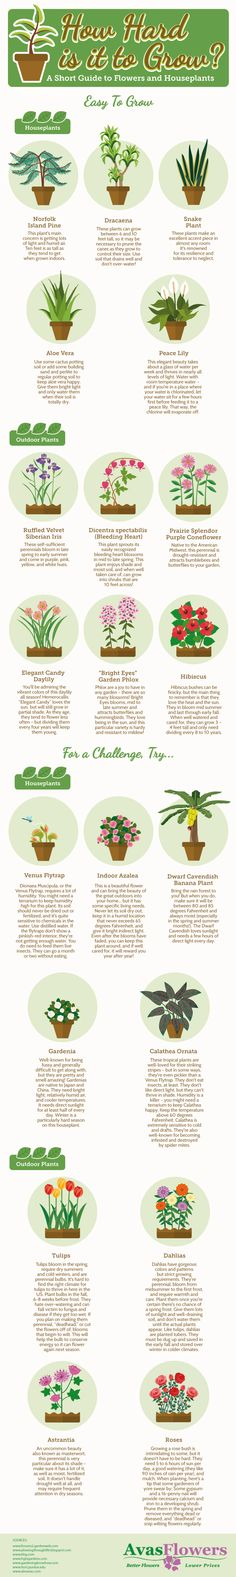 Succulents have been my plant type of choice for the last few years. They're easily maintained and can have some really beautiful flowering moments. Today's infographic will help you find out what plants and flowers will go best with your lifestyle. Tune in.